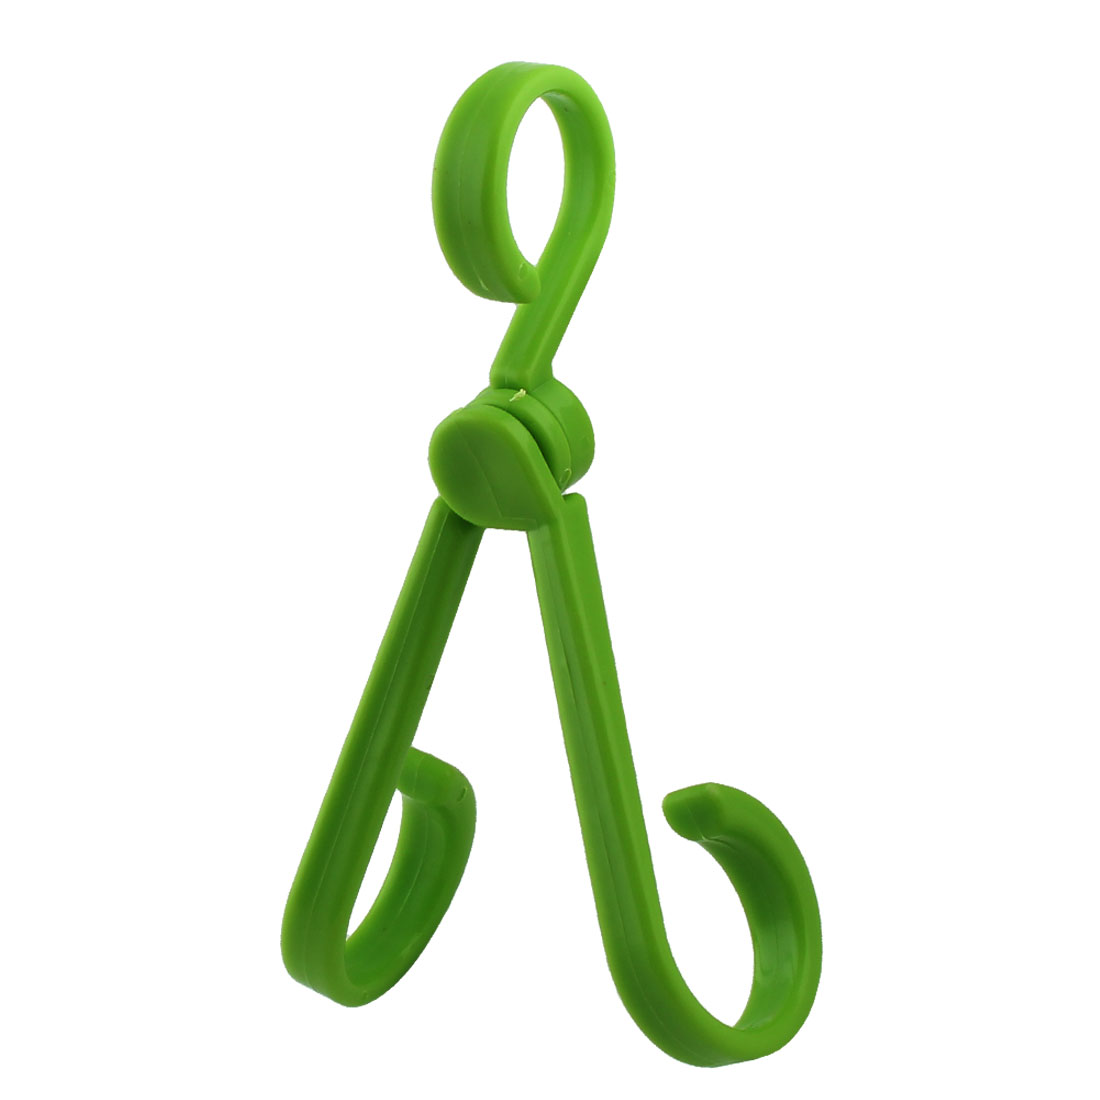 Home Car Kitchen Portable Plastic Conduplicate Pothook Hook Hanger Green